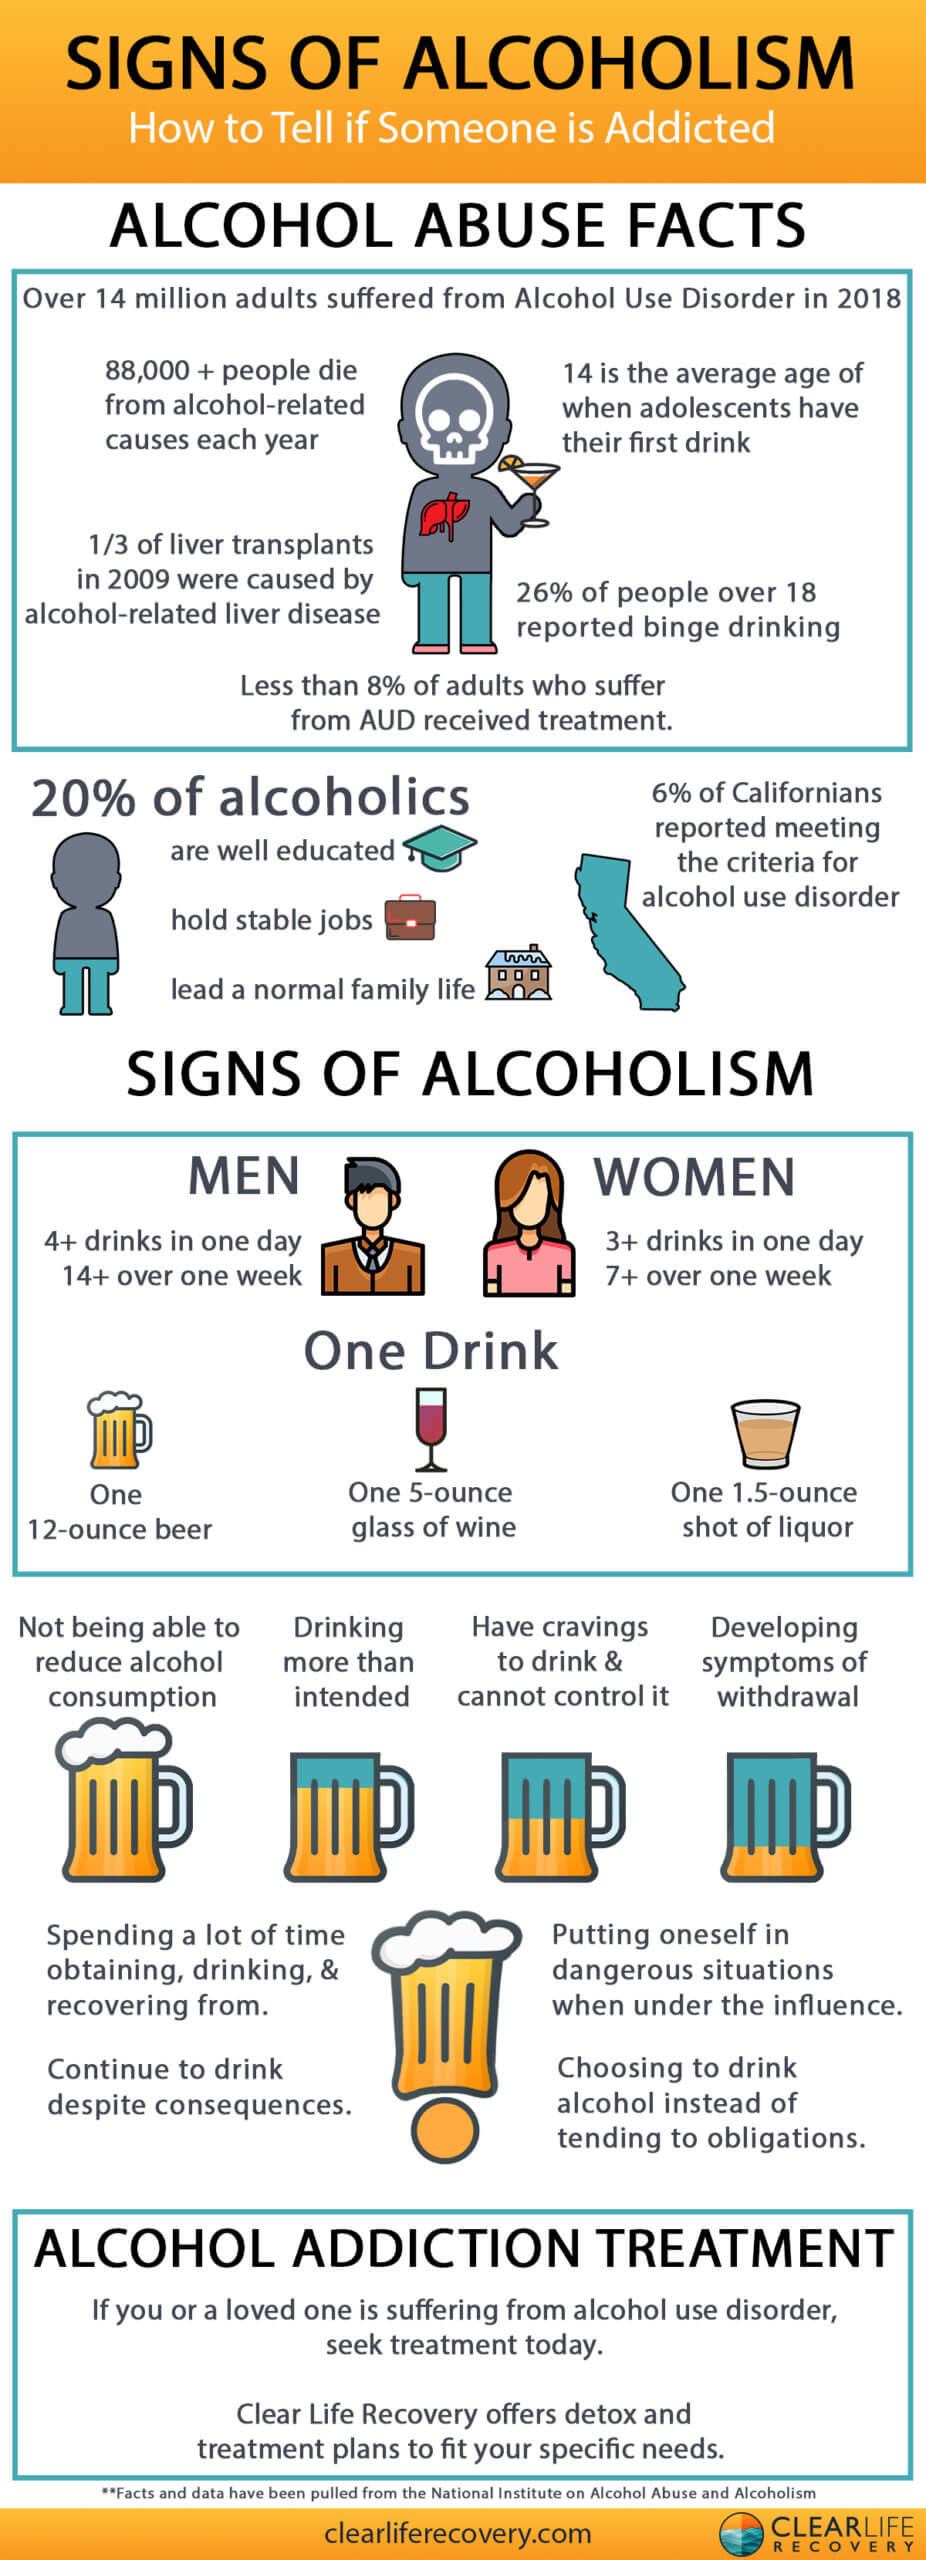 How to Tell if Someone is Addicted - Signs of Alcoholism